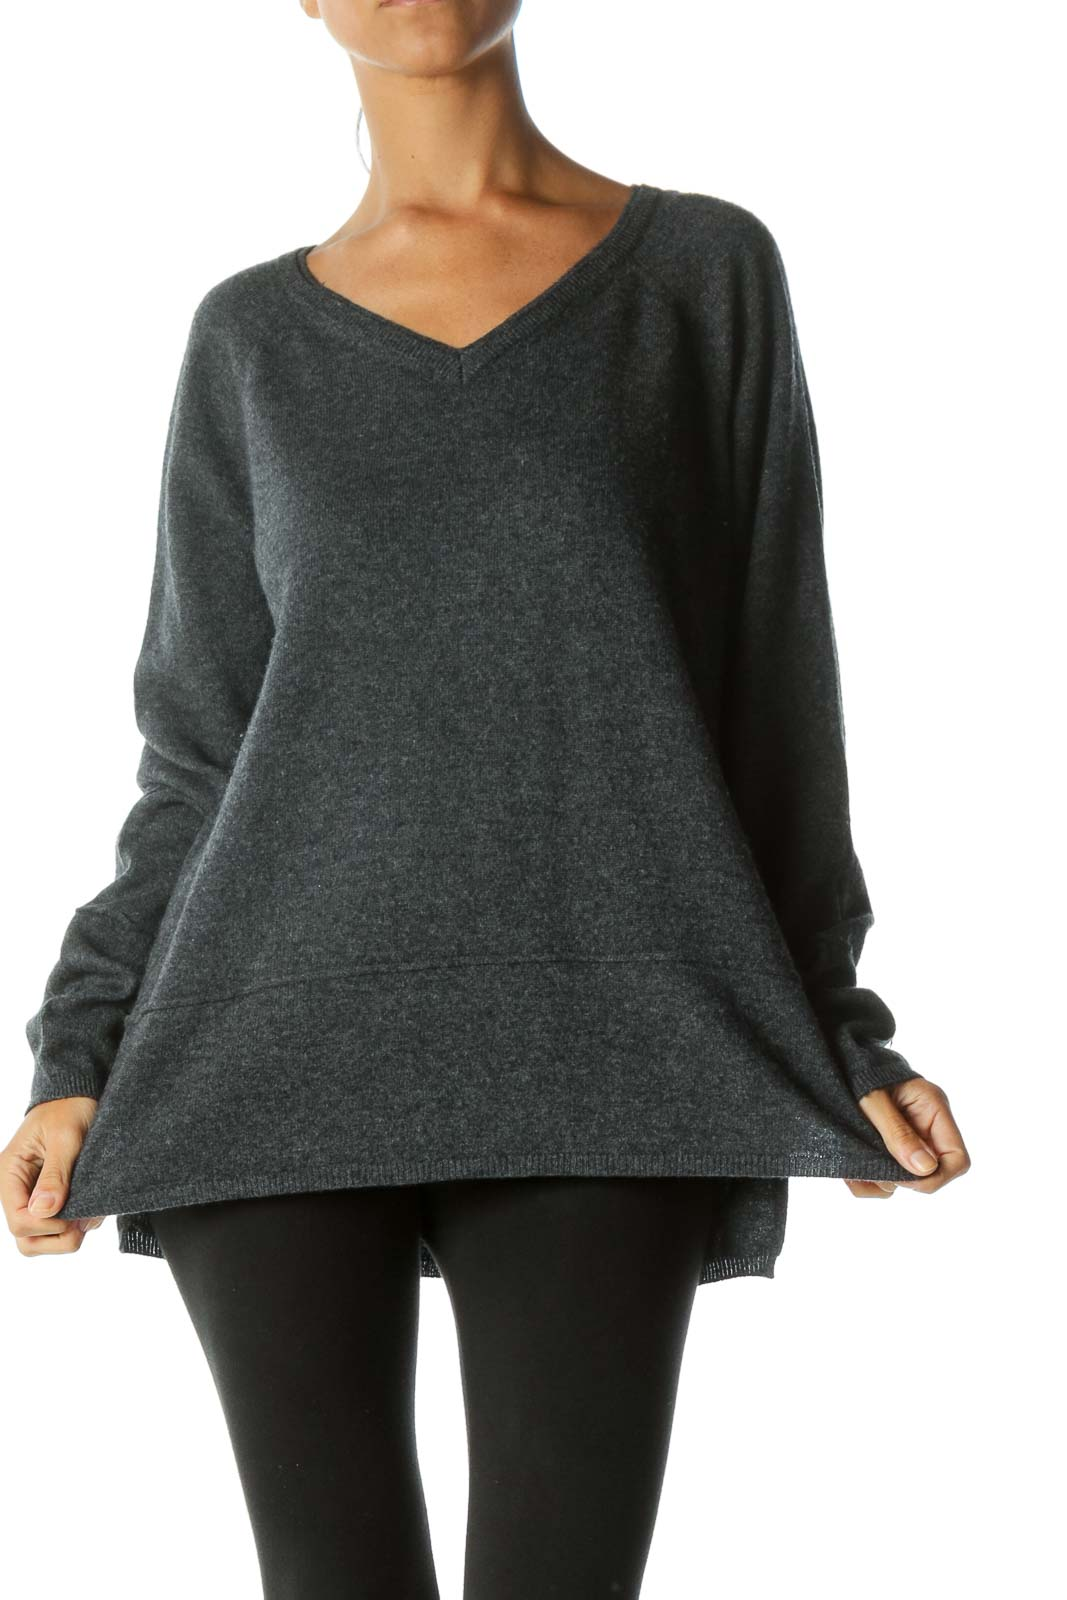 Dark Gray V-Neck 100% Cashmere Raised Seam Detail Sweater